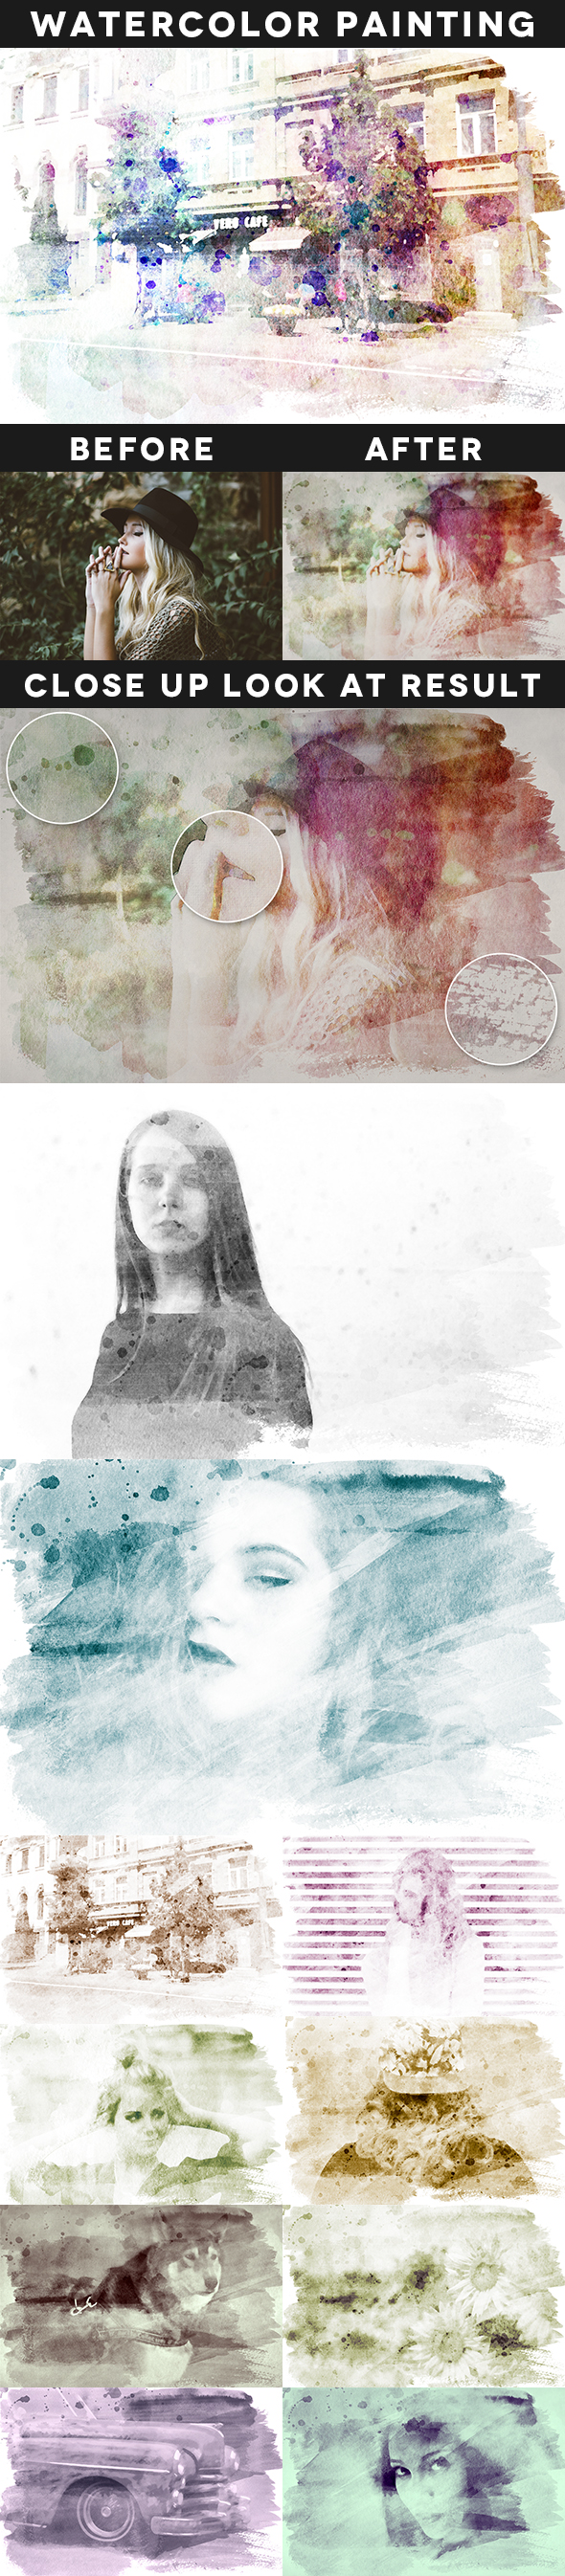 Creative Watercolor Painting Vol. 02 - Photo Effects Actions